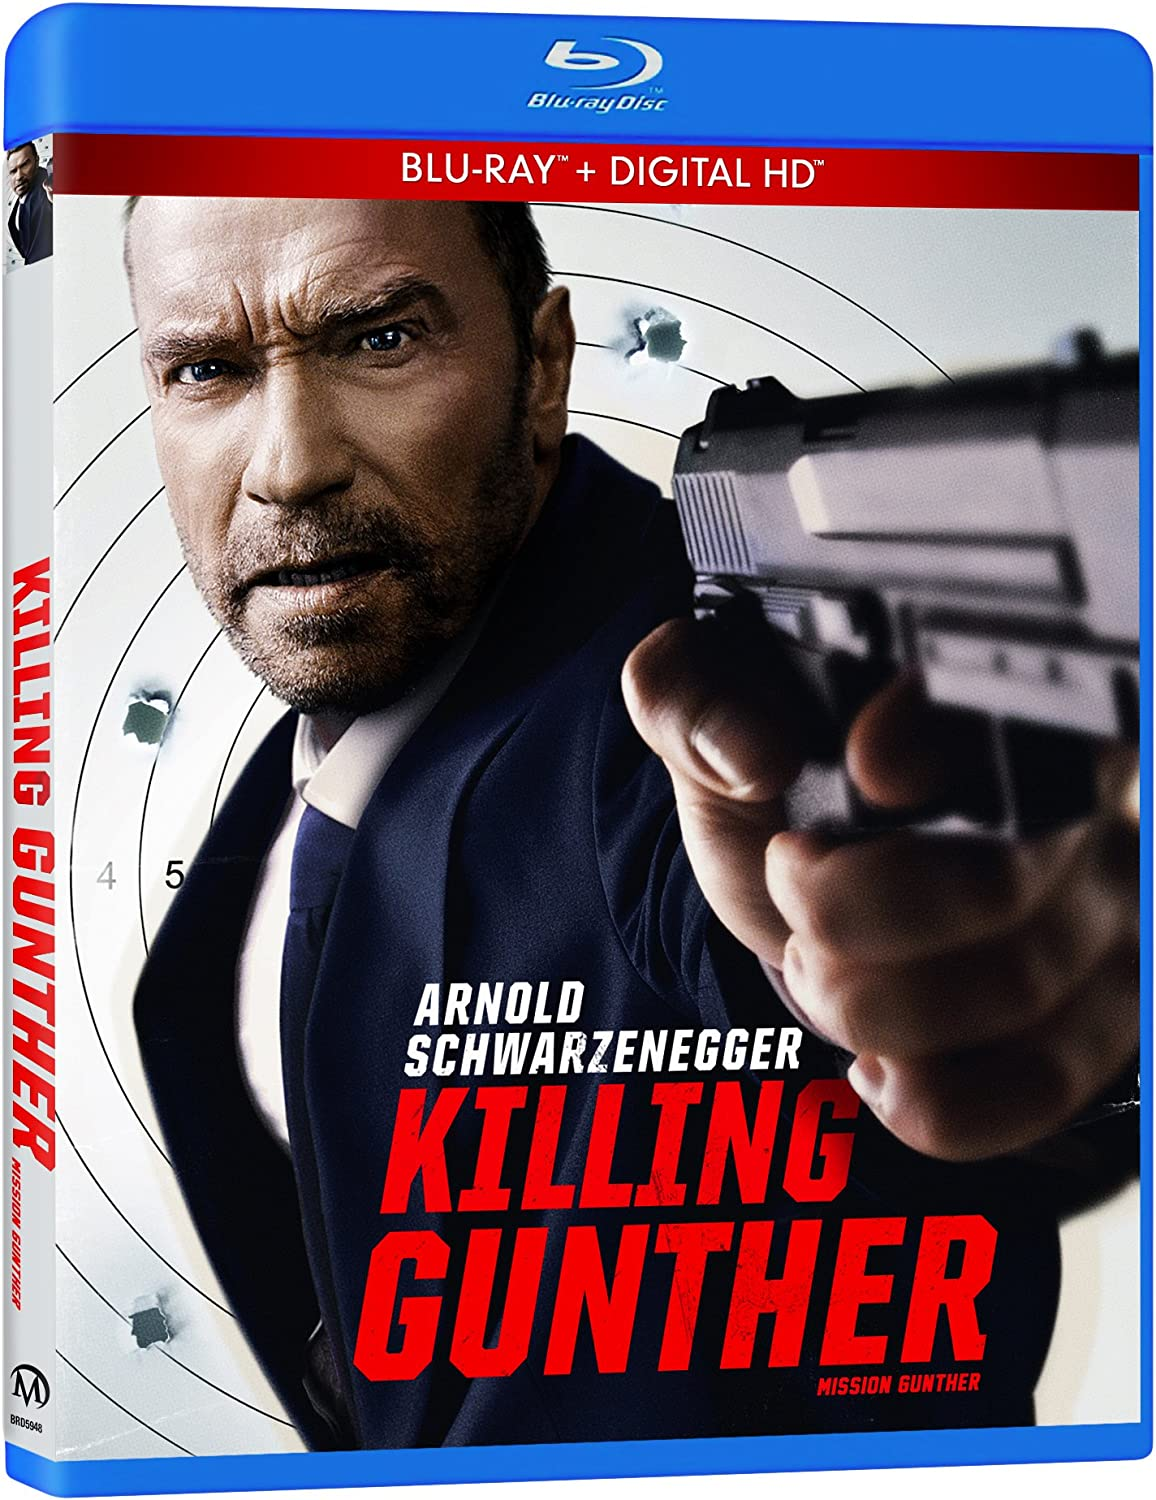 Killing Gunther Mission Gunther Blu-ray + HD Digital Copy ...